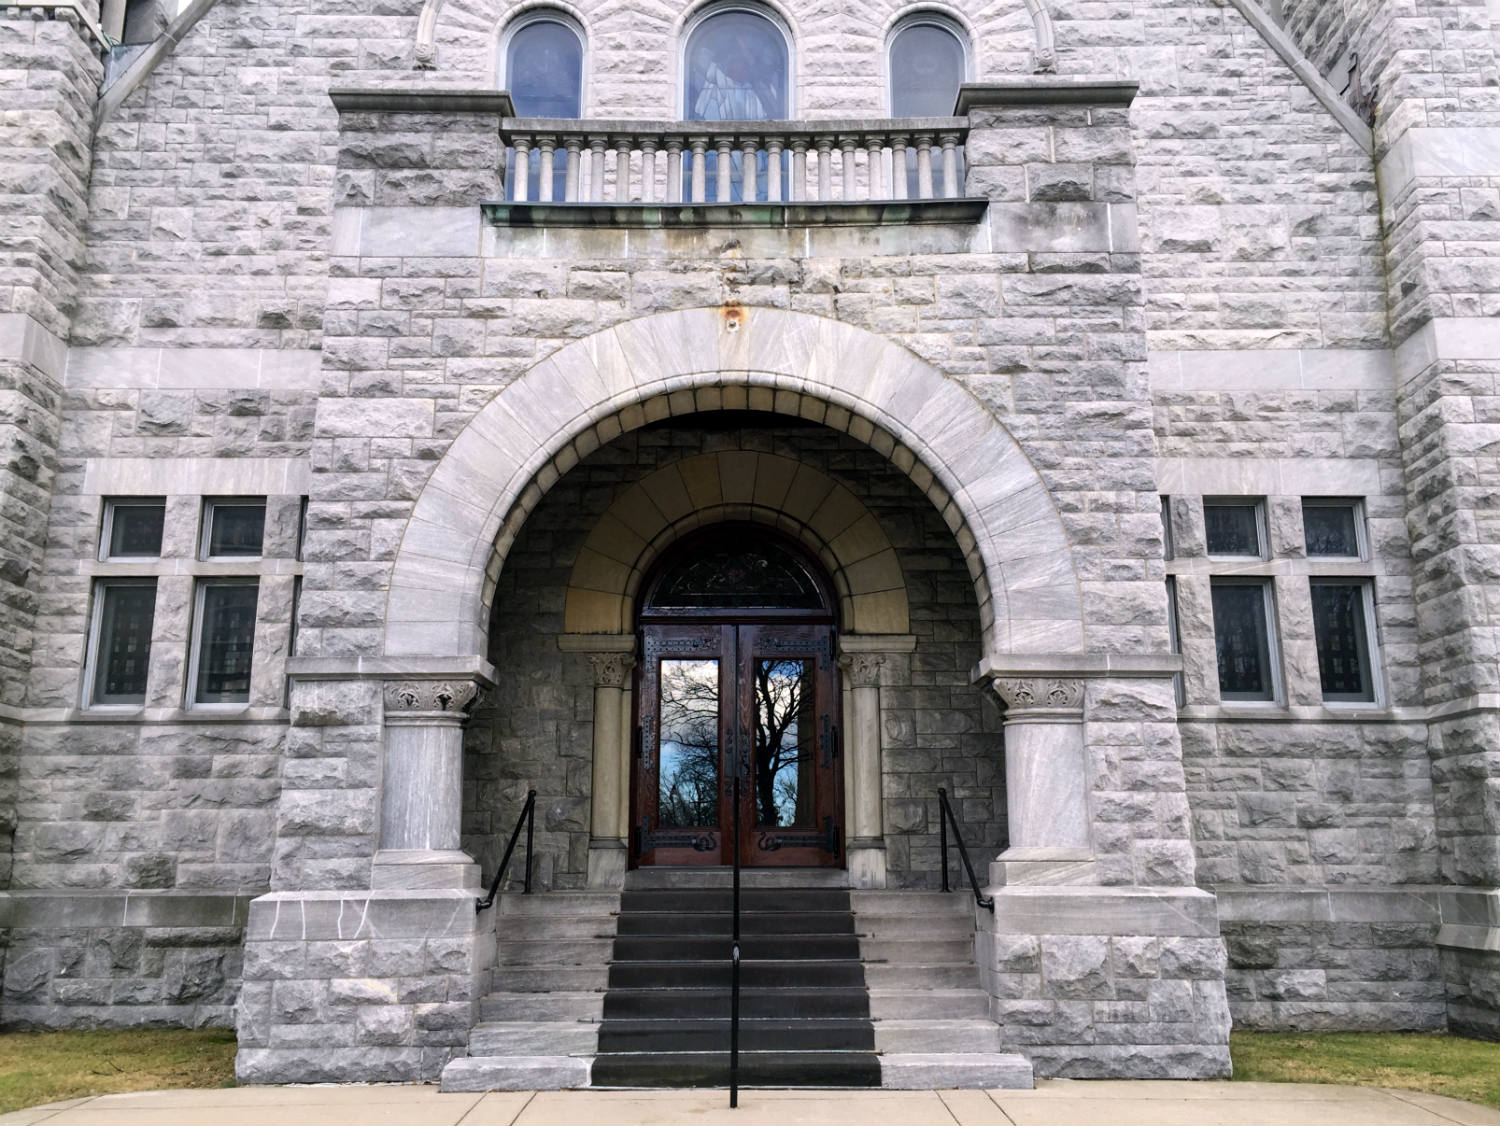 Entranceway off East Ave to Third Presbyterian Church in Rochester, NY